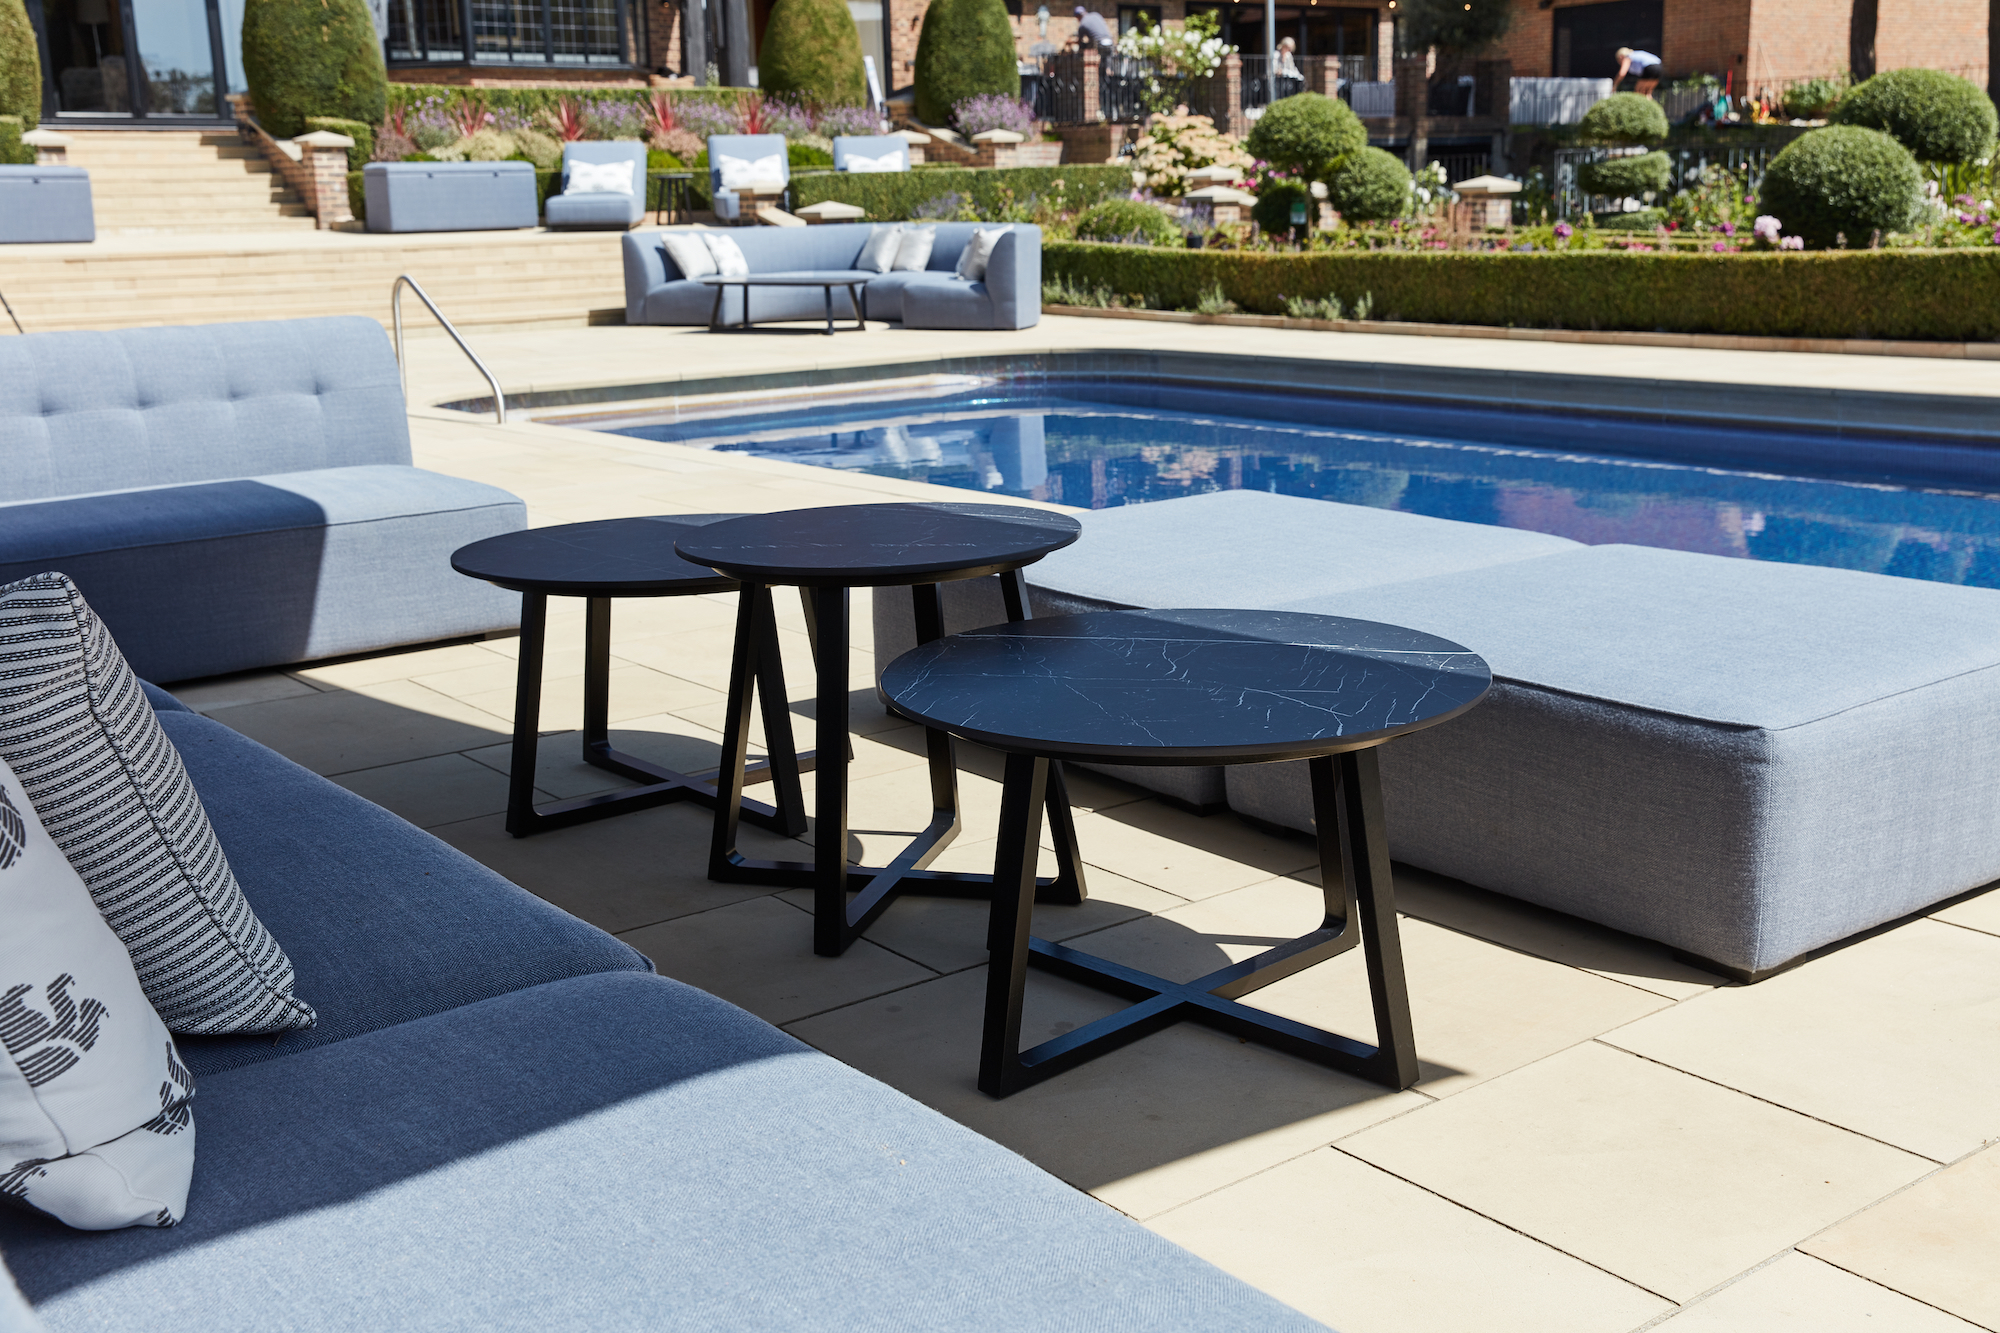 Outdoor porcelain tables